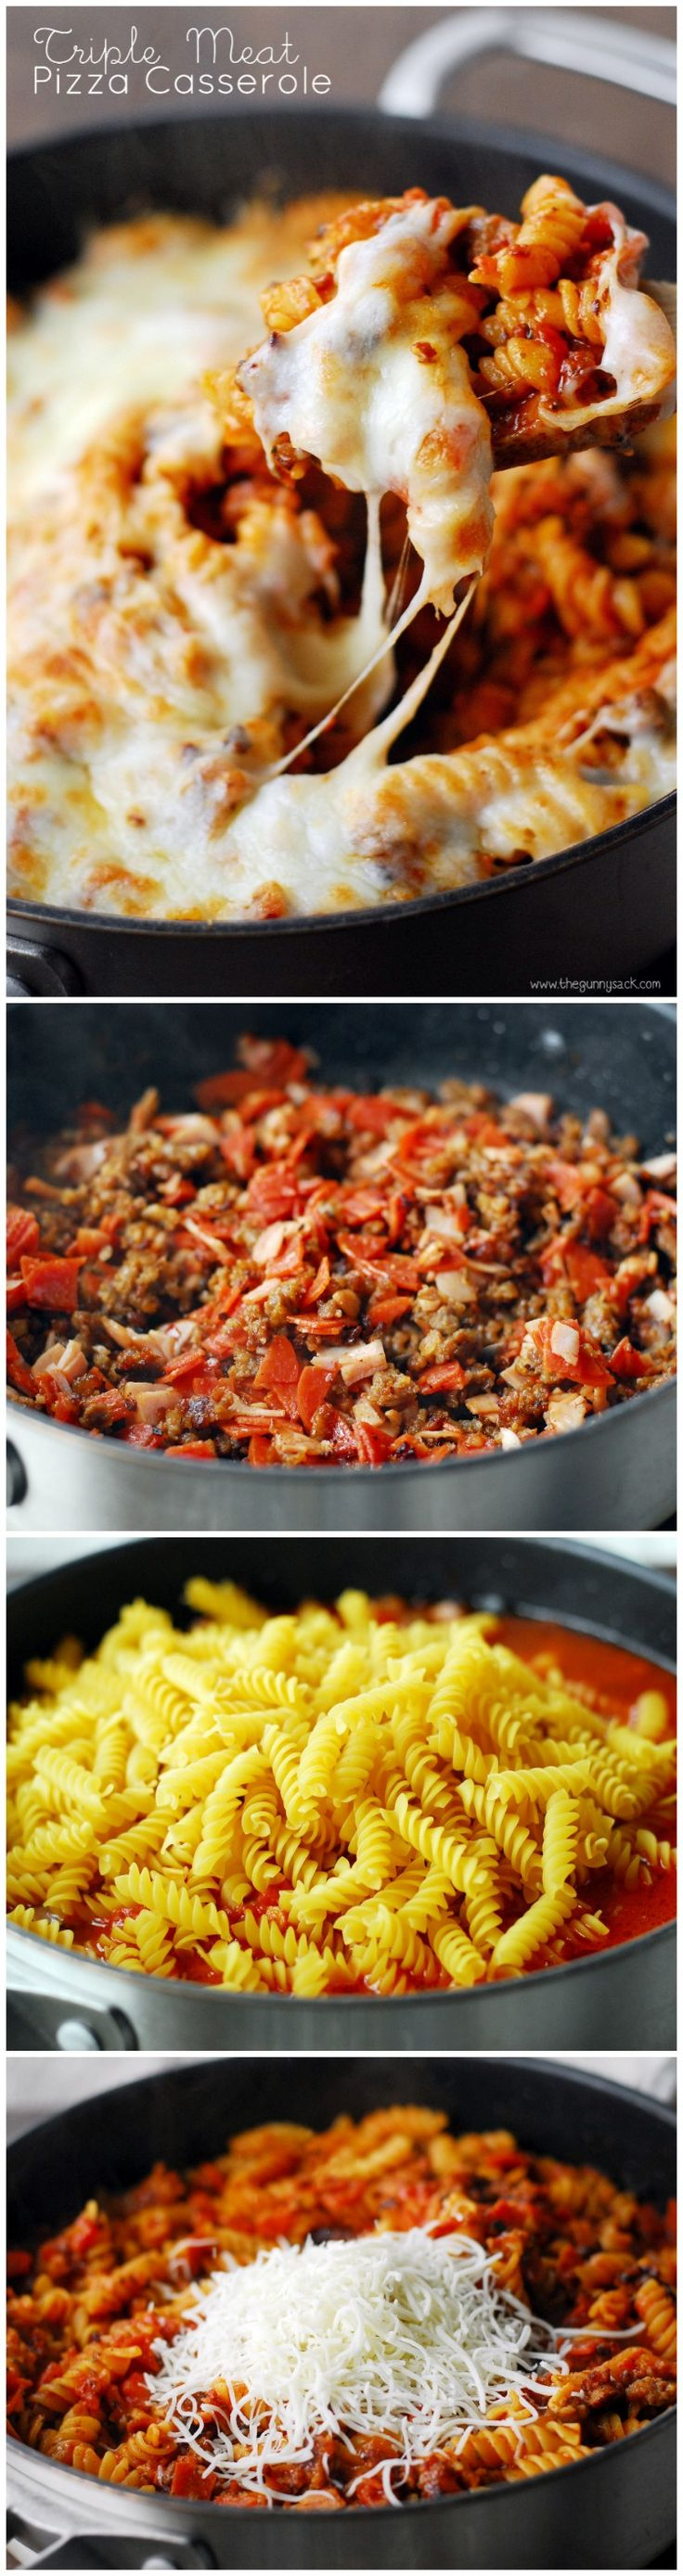 Triple Meat Pizza Casserole